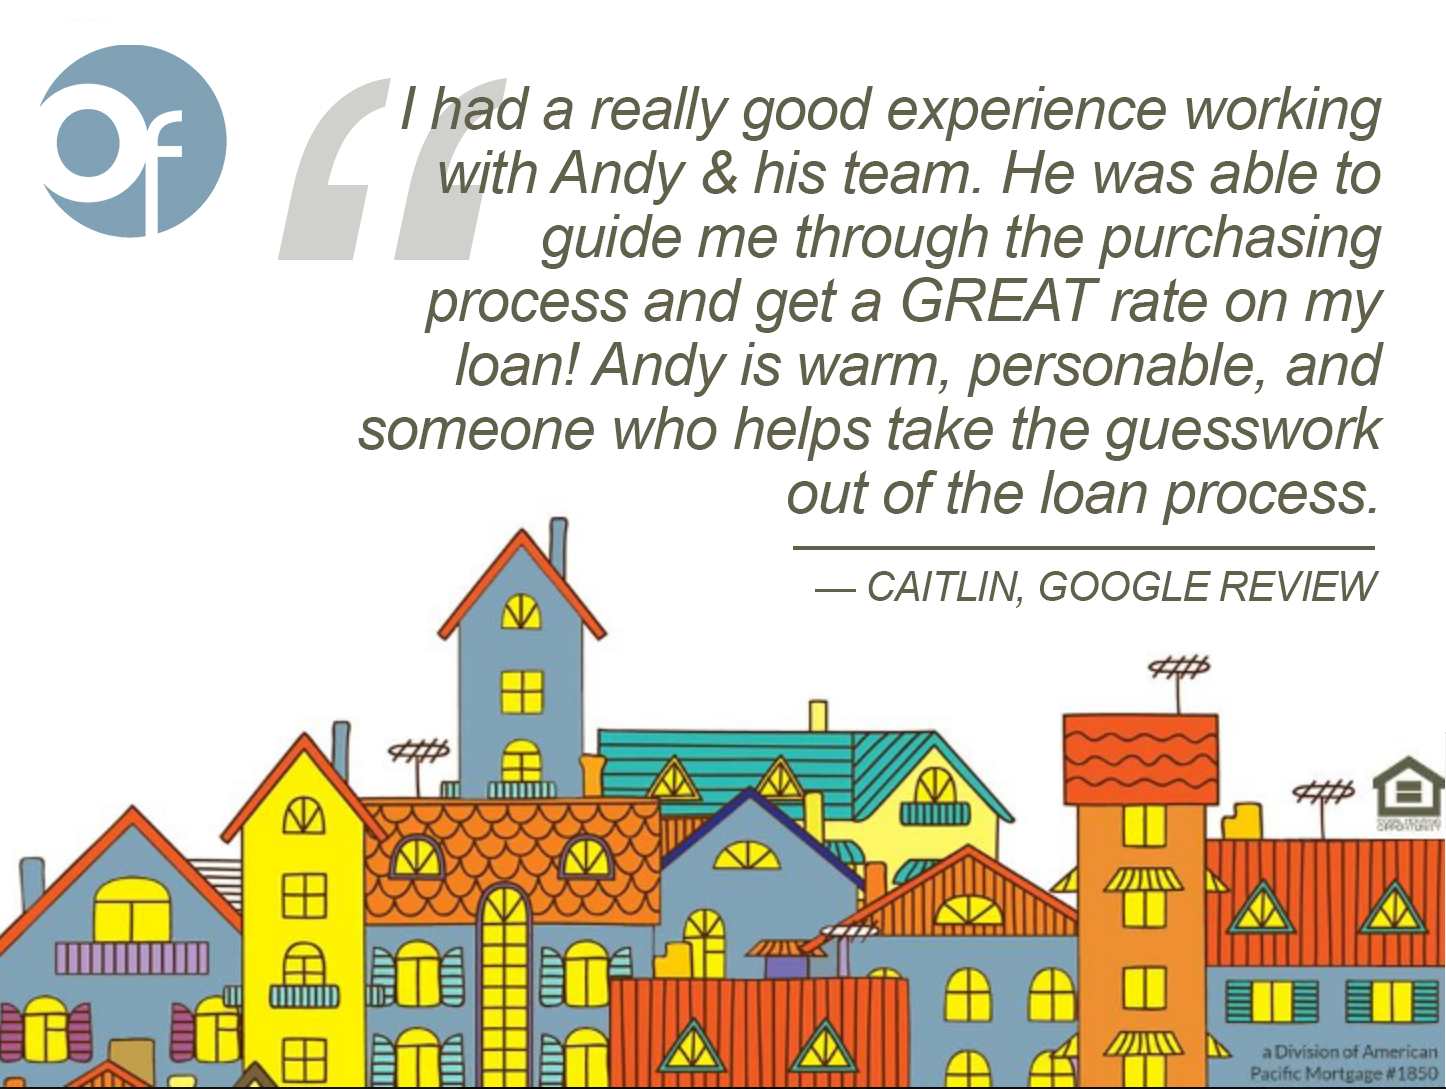 I had a really good experience working with Andy & his team. He was able to guide me through the purchasing process and get a GREAT rate on my loan! Andy is warm, personable, and someone who helps take the guesswork out of the loan process.